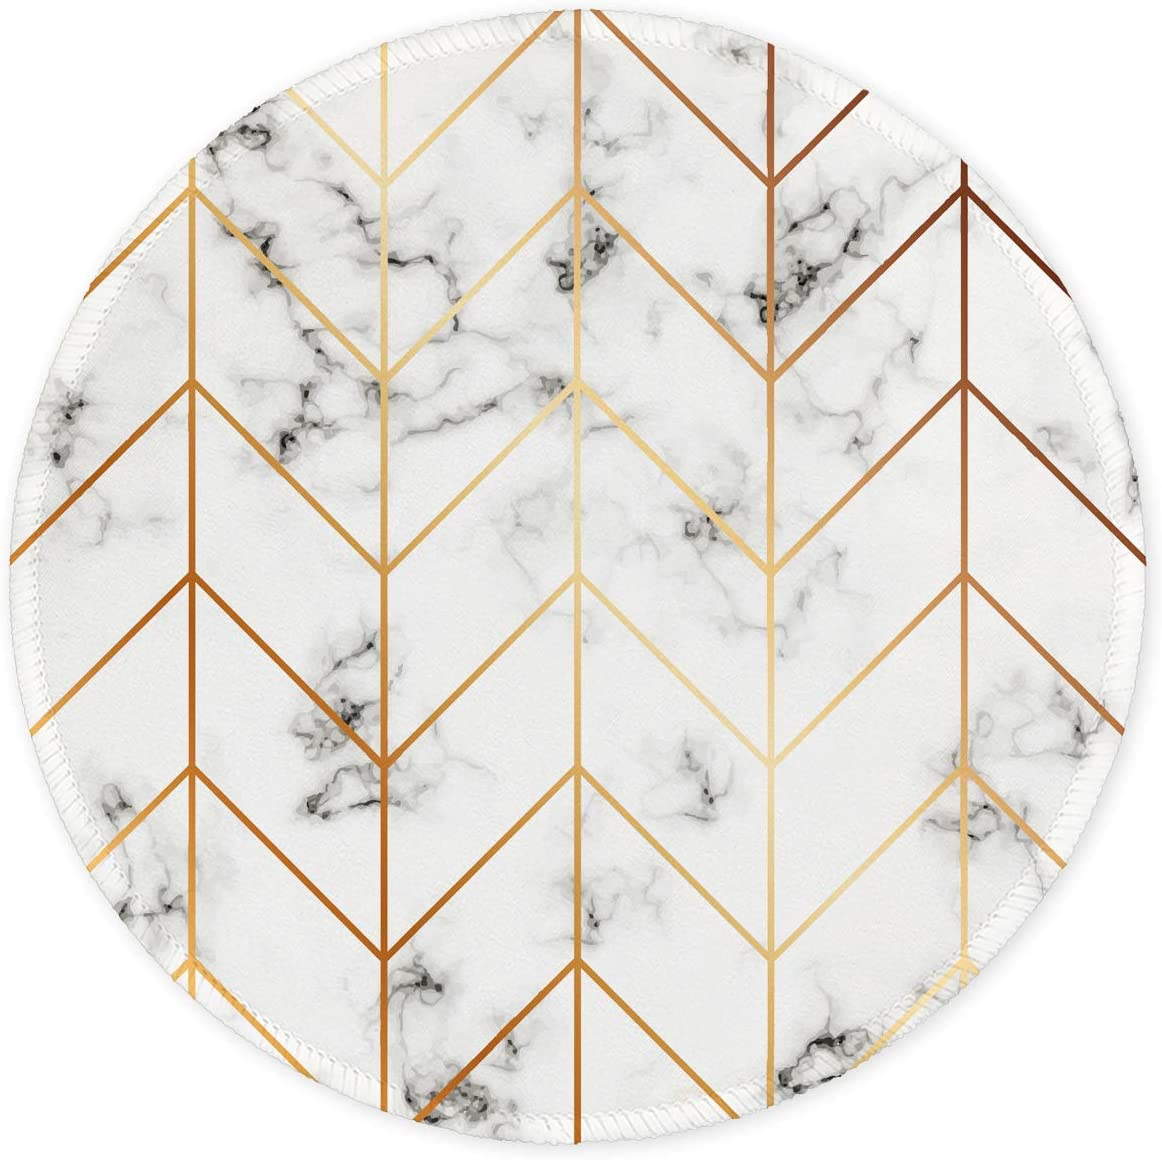 Auhoahsil Mouse Pad, Round Marble Theme Anti-Slip Rubber Mousepad with Durable Stitched Edges for Gaming Office Laptop Computer PC Men Women Kids, Cute Custom Design, 8.7 x 8.7 in, Striped Marble